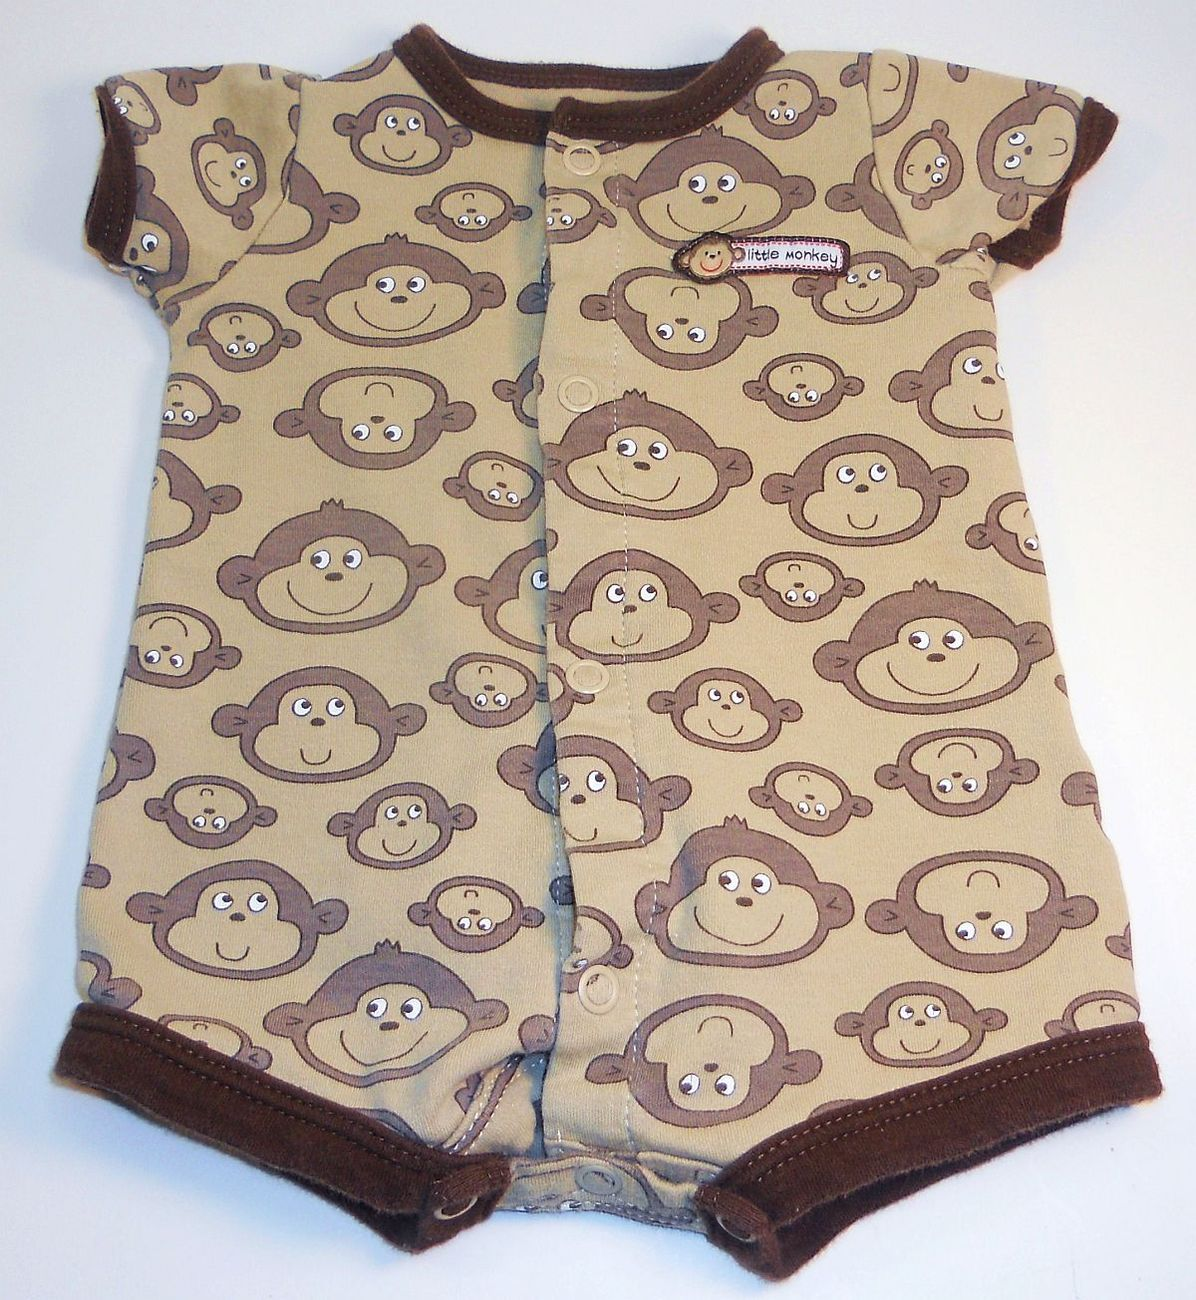 Carters Little Monkey brown onesie footie pants outfit New Born